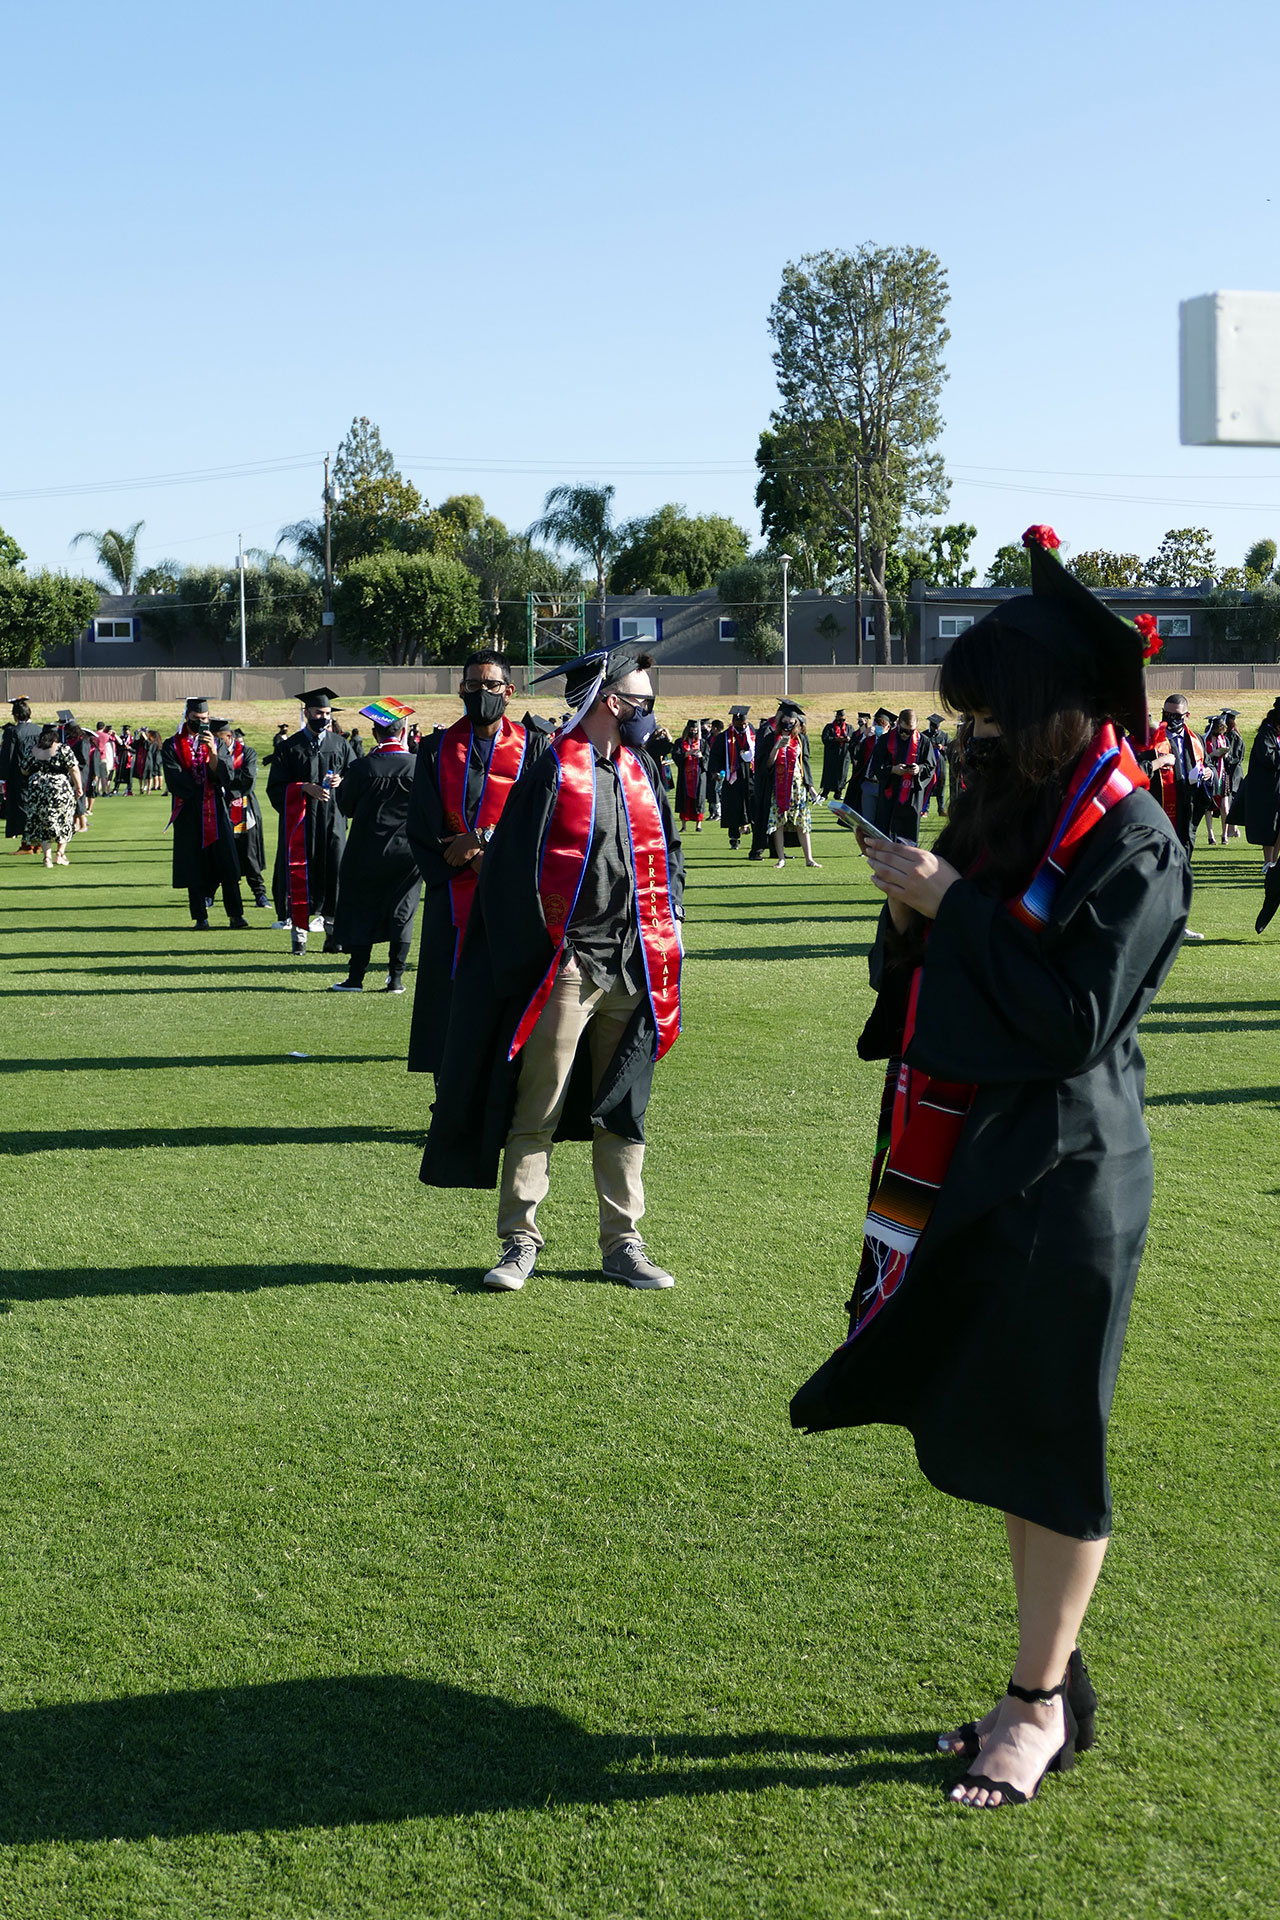 Students line up, ready for the procession.